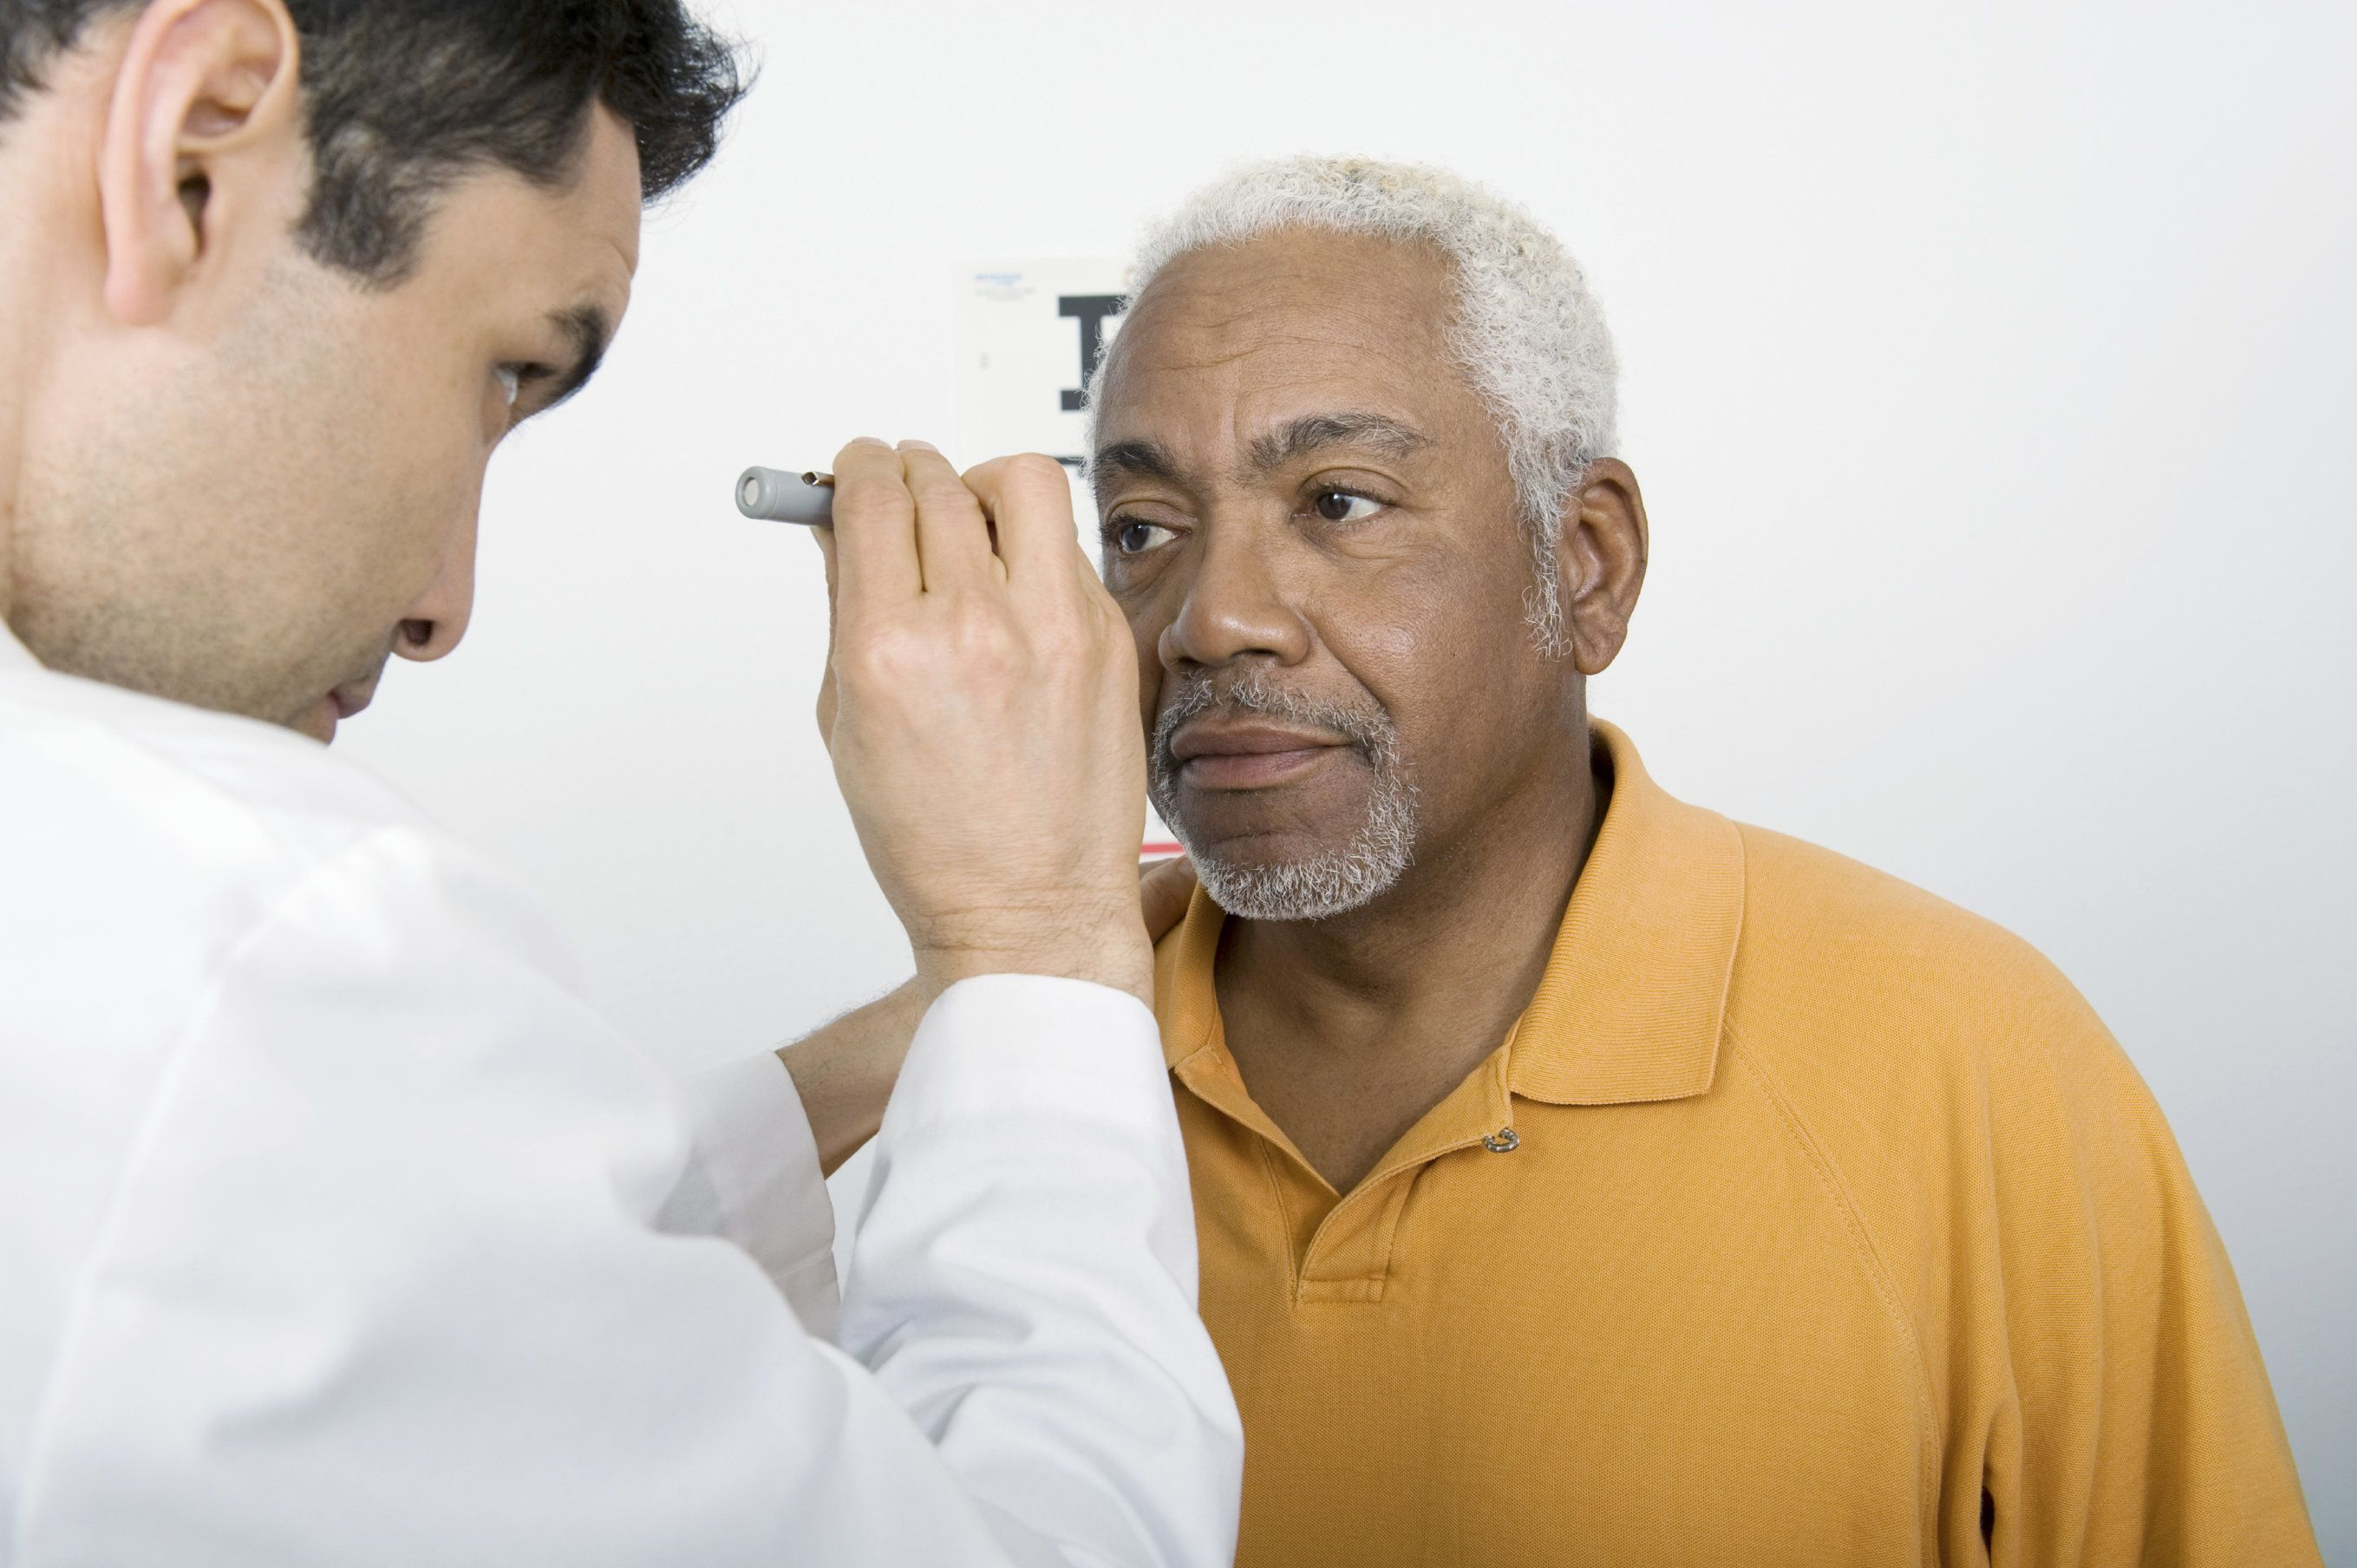 An older man at an eye exam